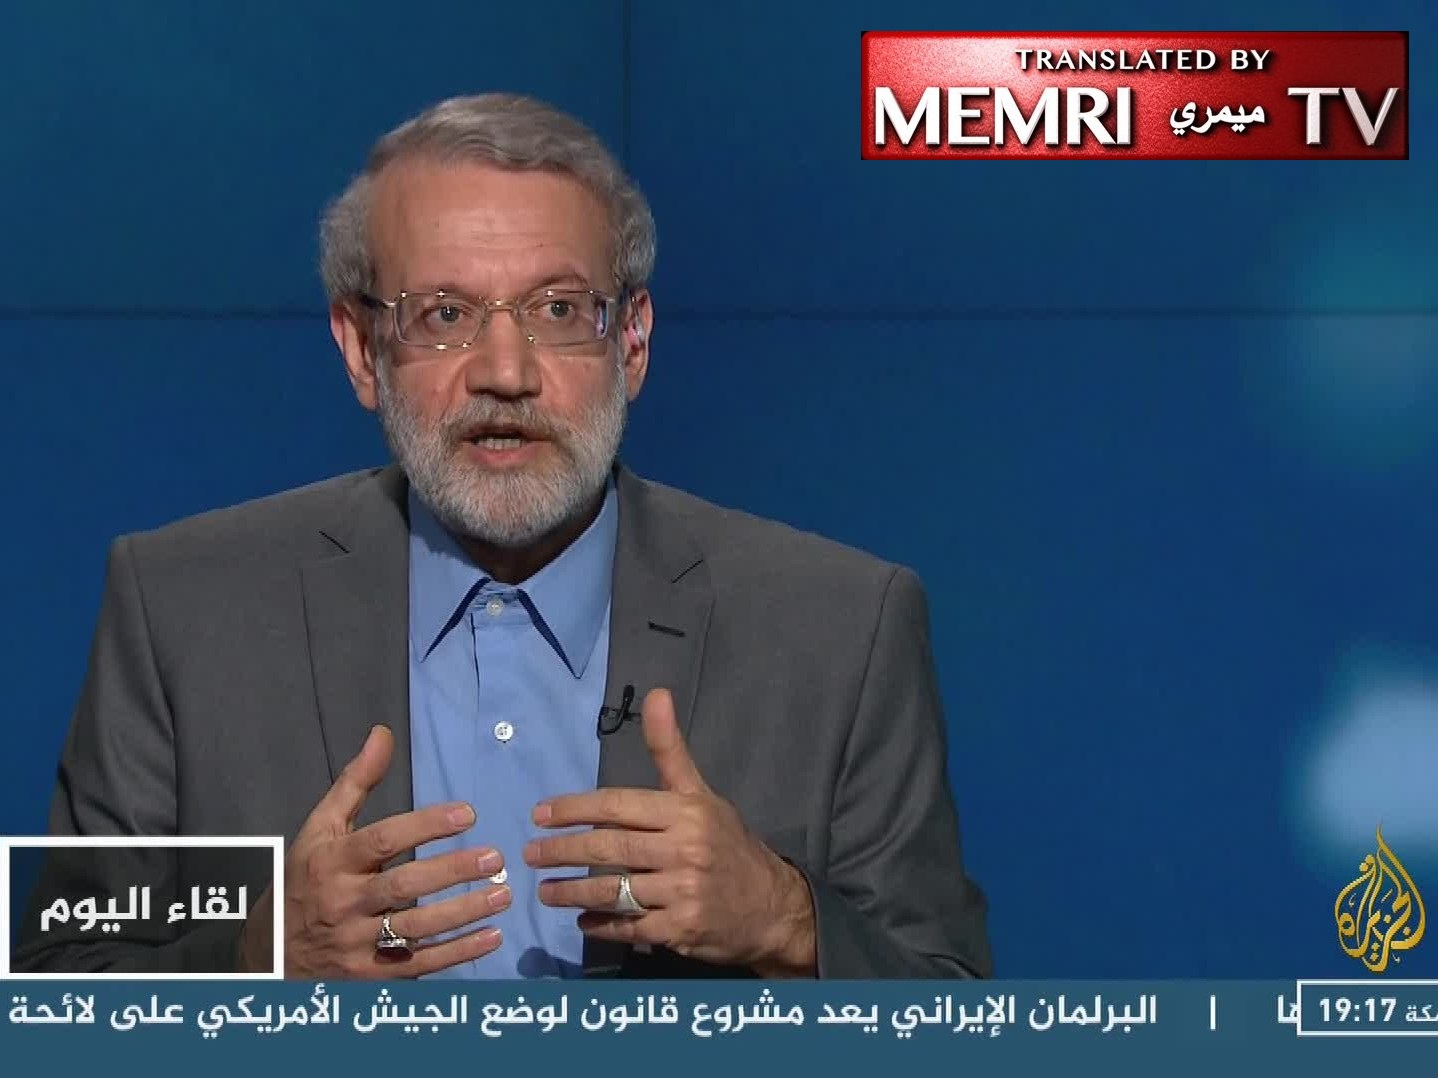 Majlis Speaker Ali Larijani: Iran Will Consider U.S. Military, Pentagon Terrorist Groups If U.S. Considers IRGC Terrorist Group